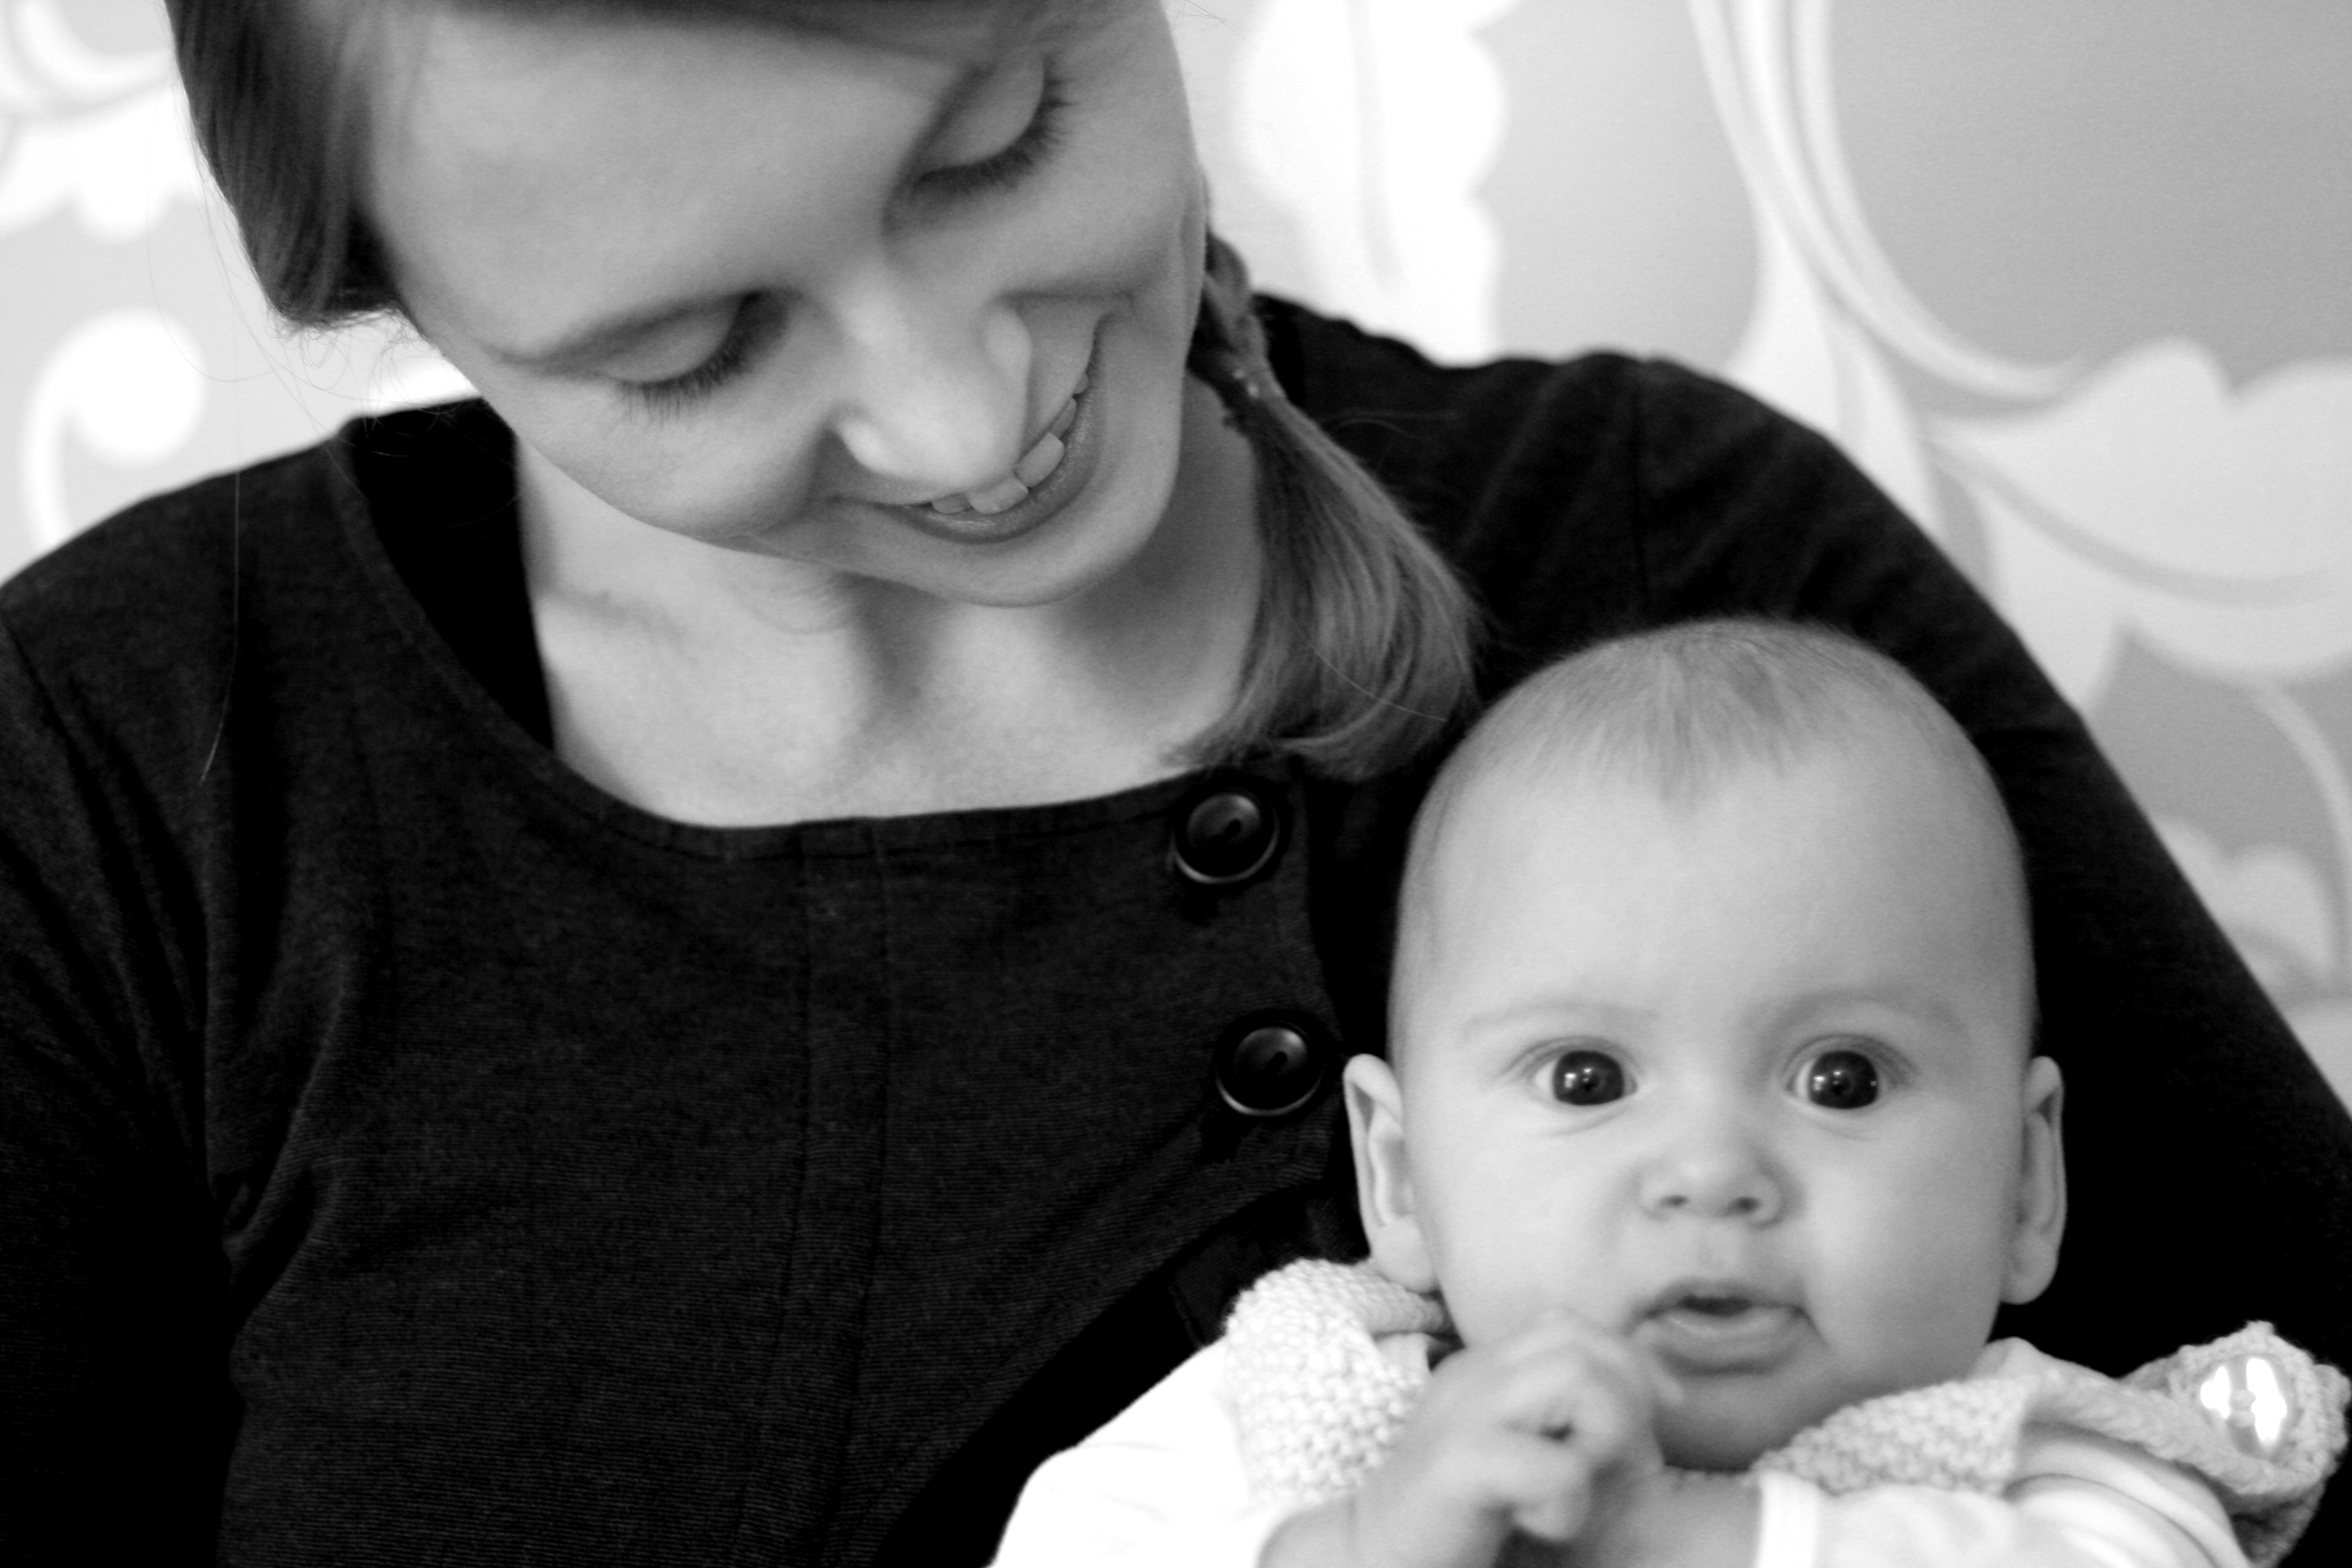 Lauren's postnatal depression story - life on wallace